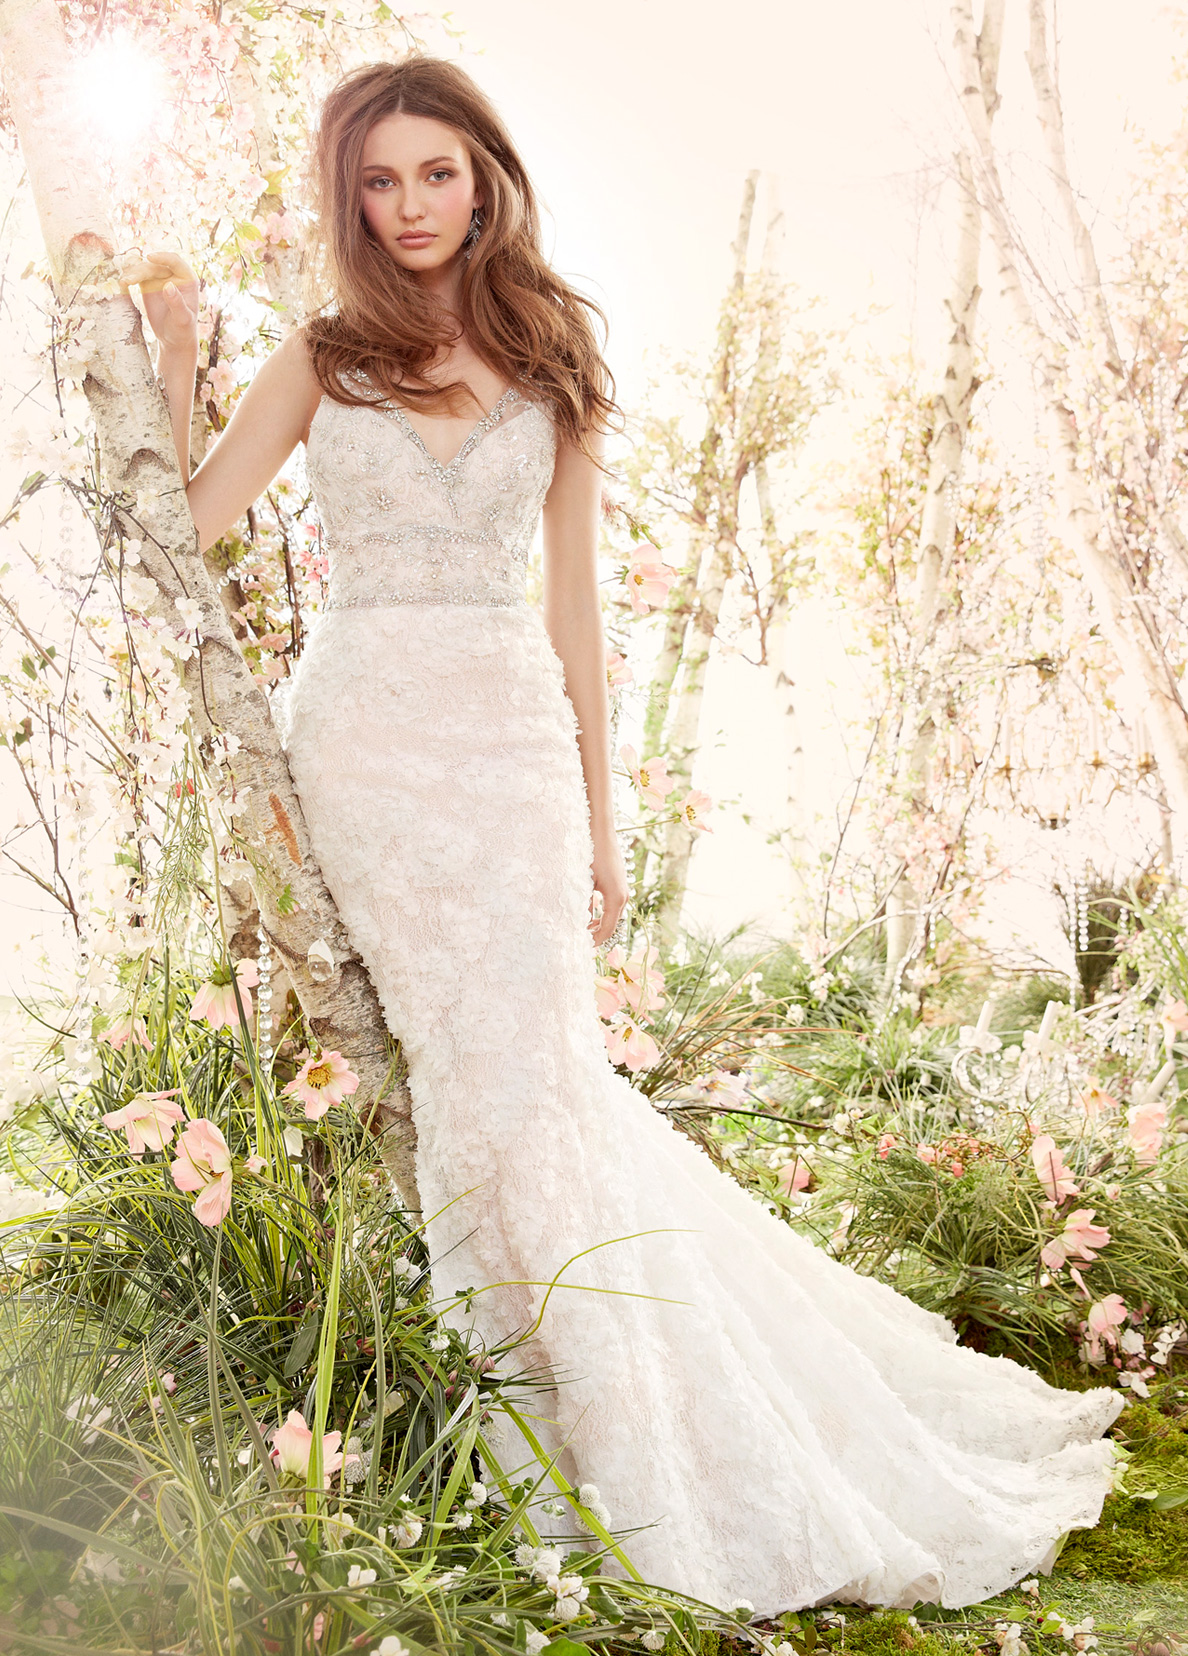 Bridal gowns and wedding dresses by jlm couture style 8414 for Jim hjelm wedding dresses